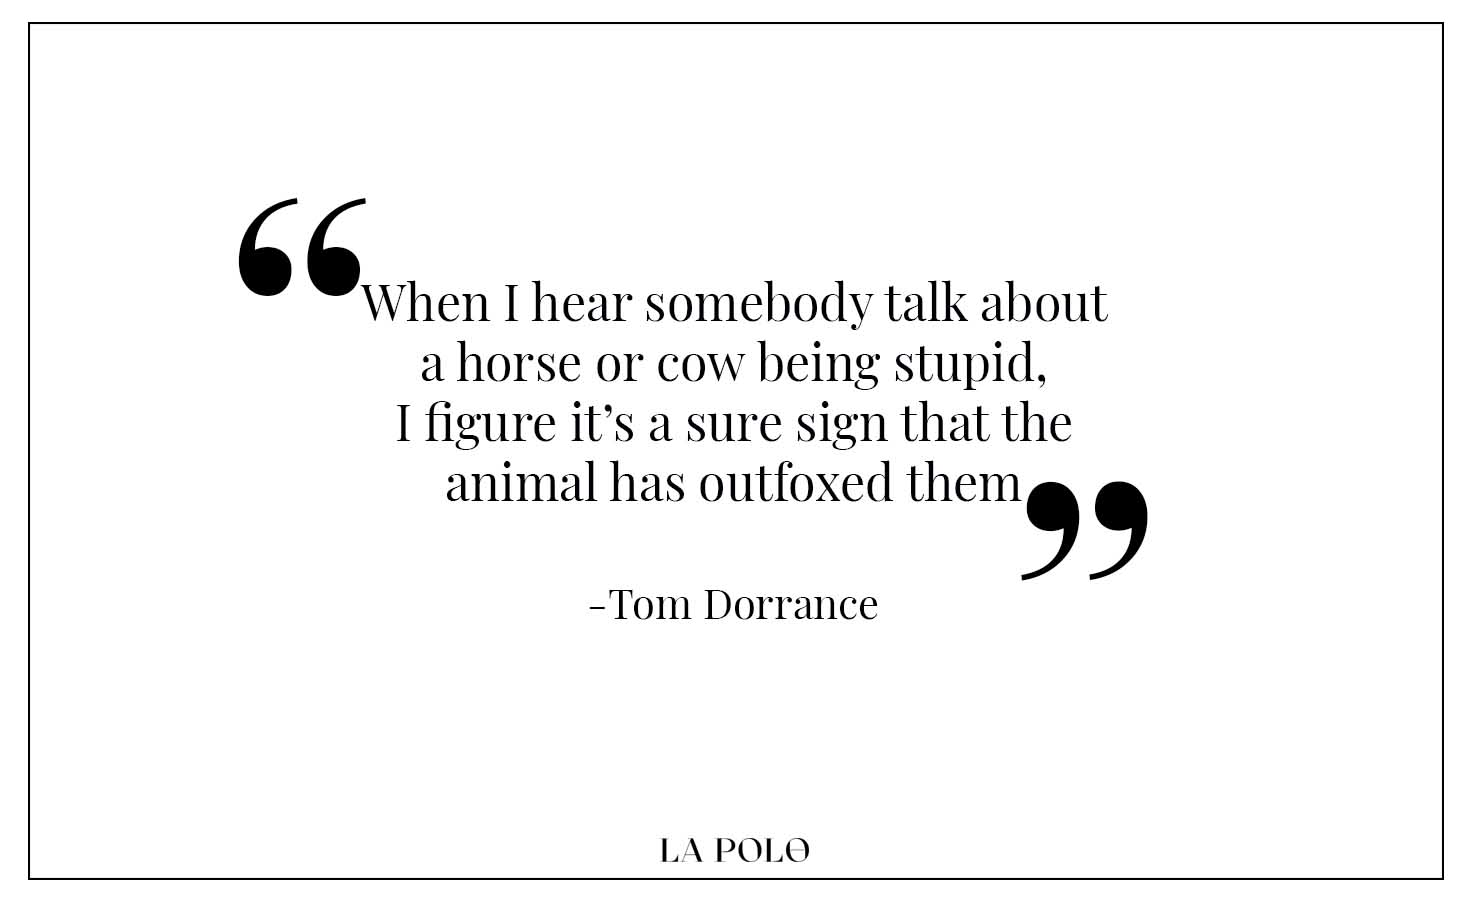 Tom Dorrance quotes